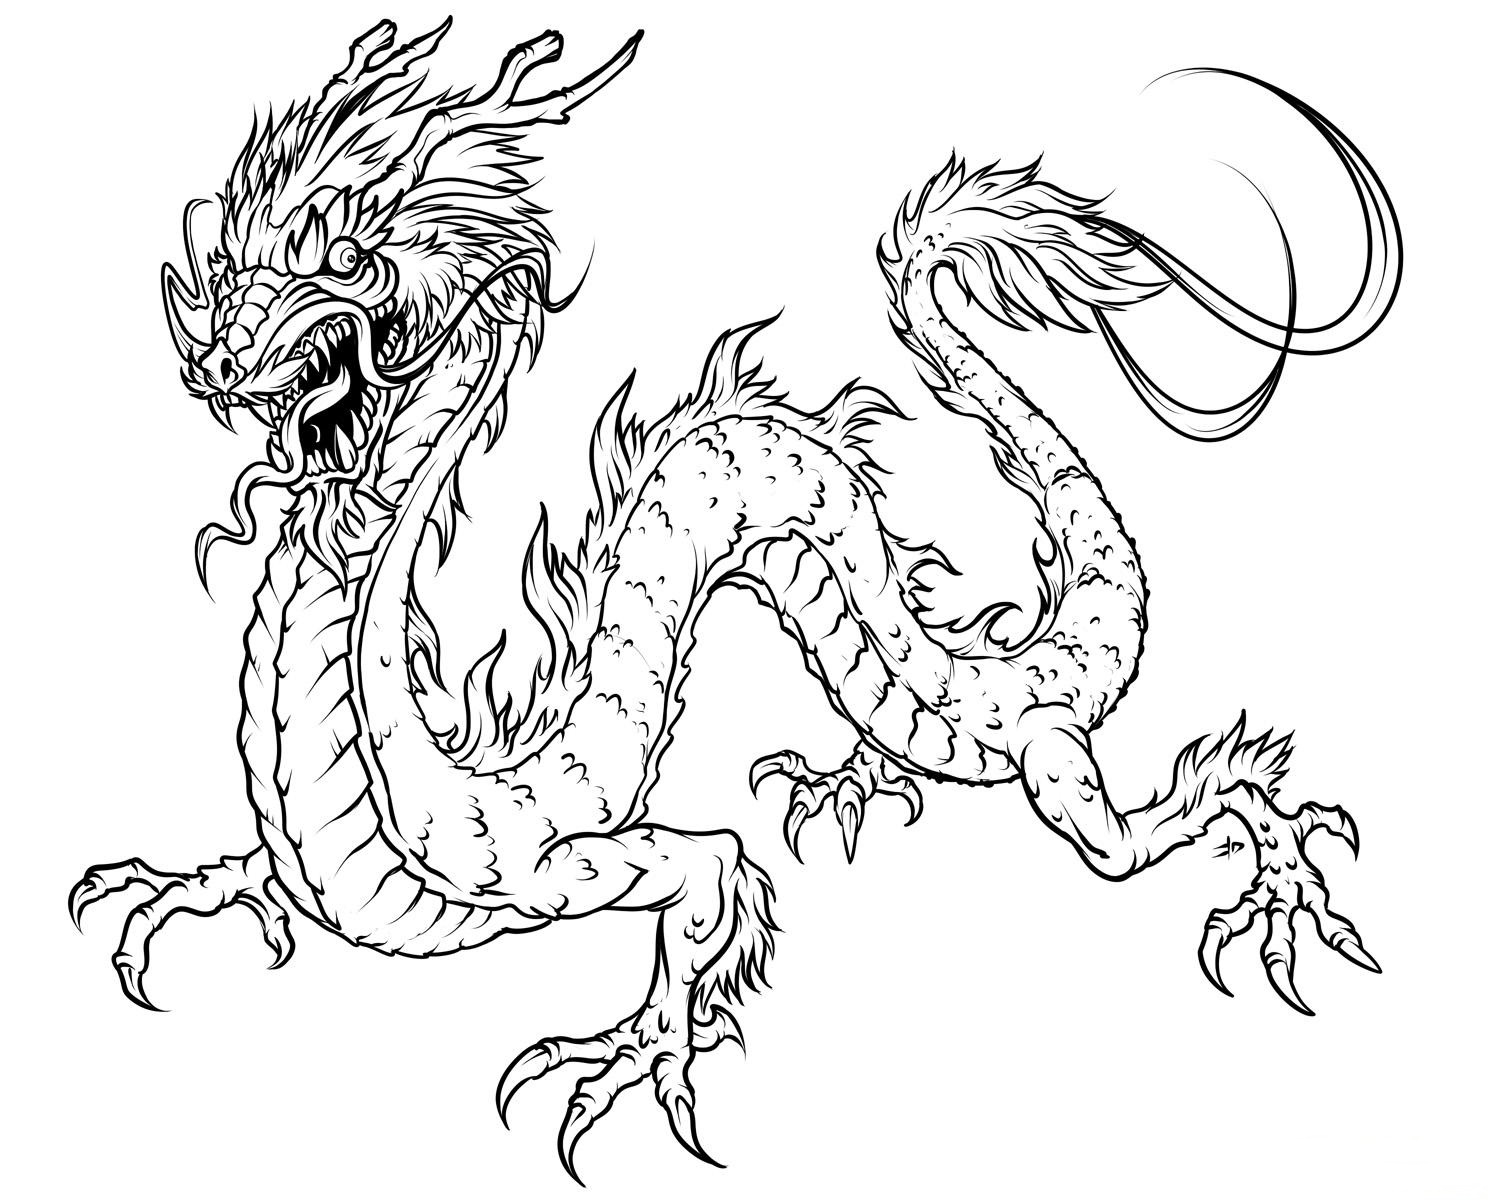 Printable Dragon Coloring Pages - Free Printable Dragon Coloring Pages for Kids